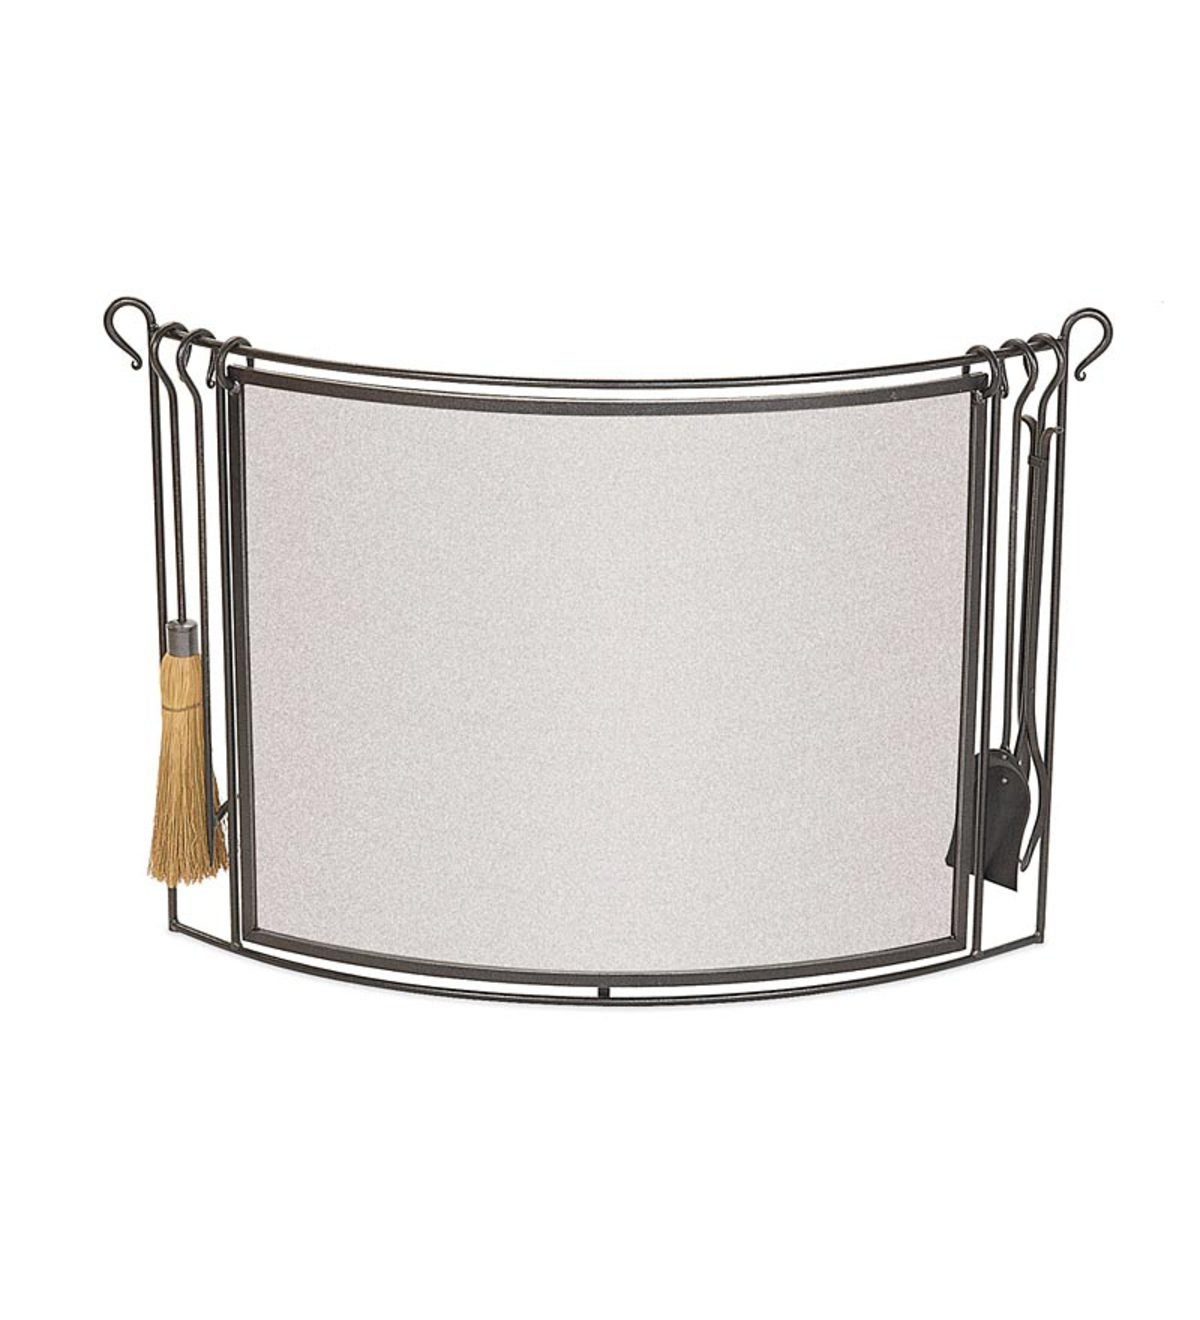 Bowed Steel Fireplace Screen With 4-Piece Tool Set